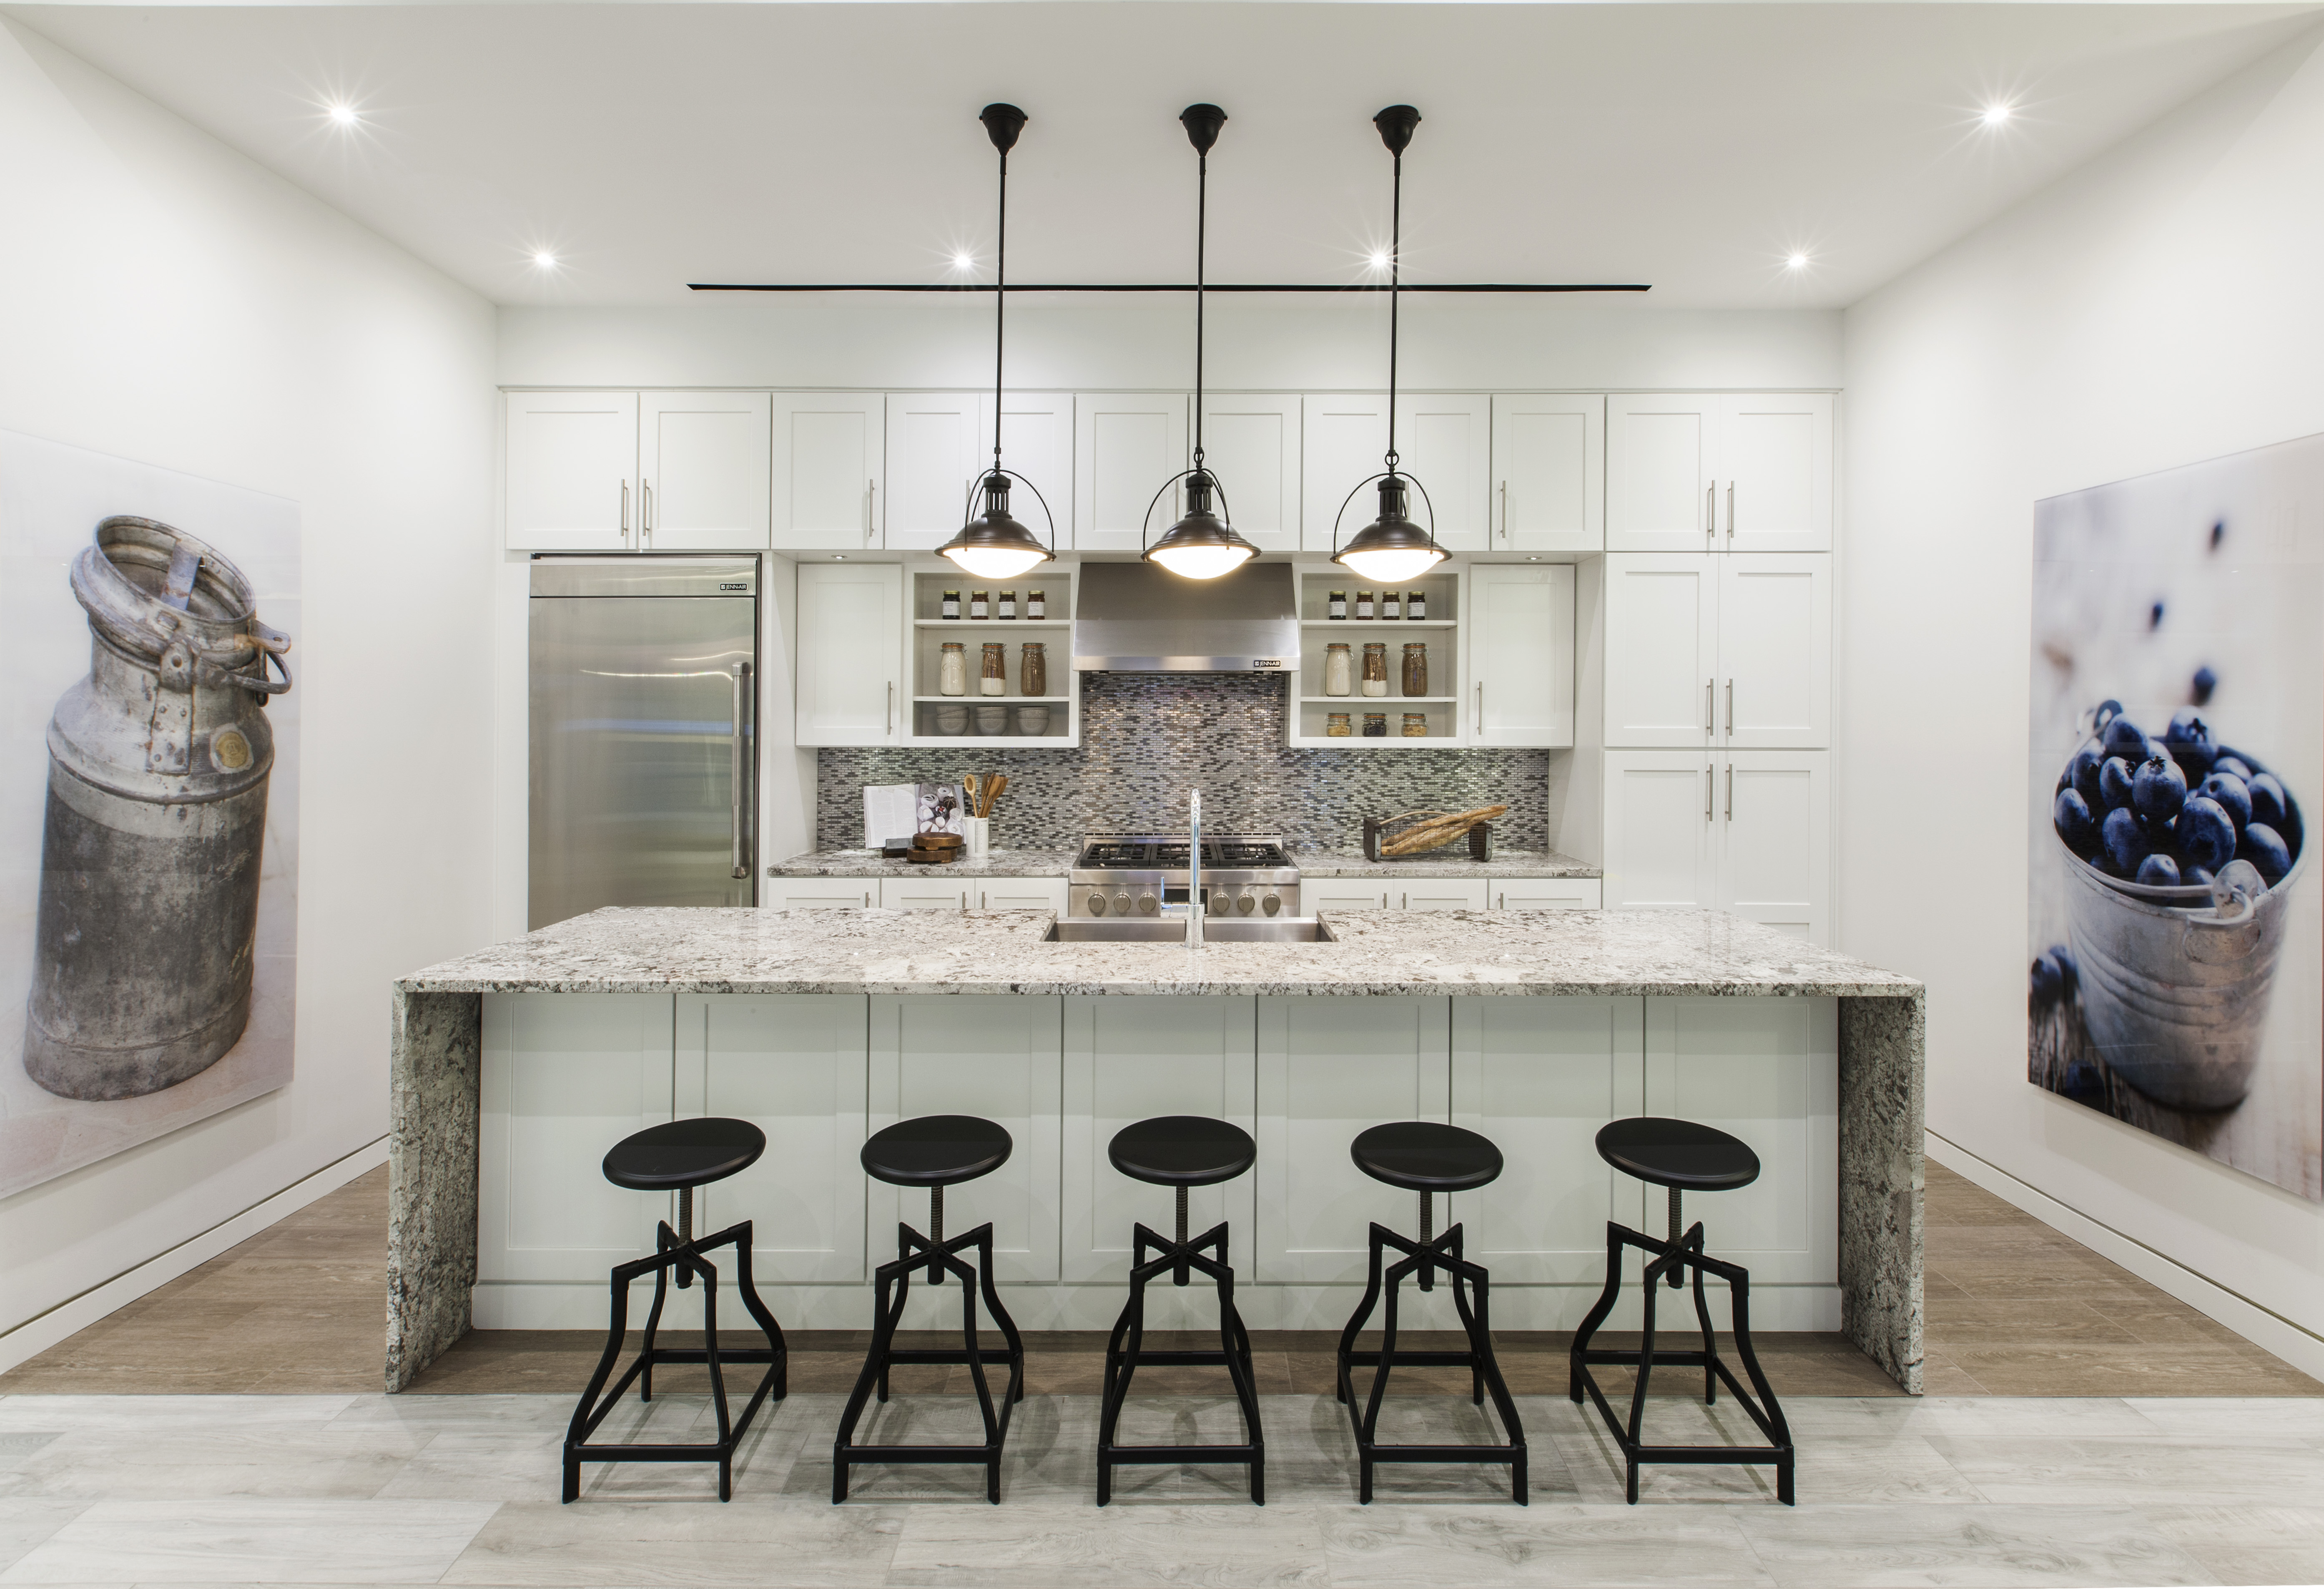 Culinary Dream Designs: Ideal Kitchens for the Home Chef